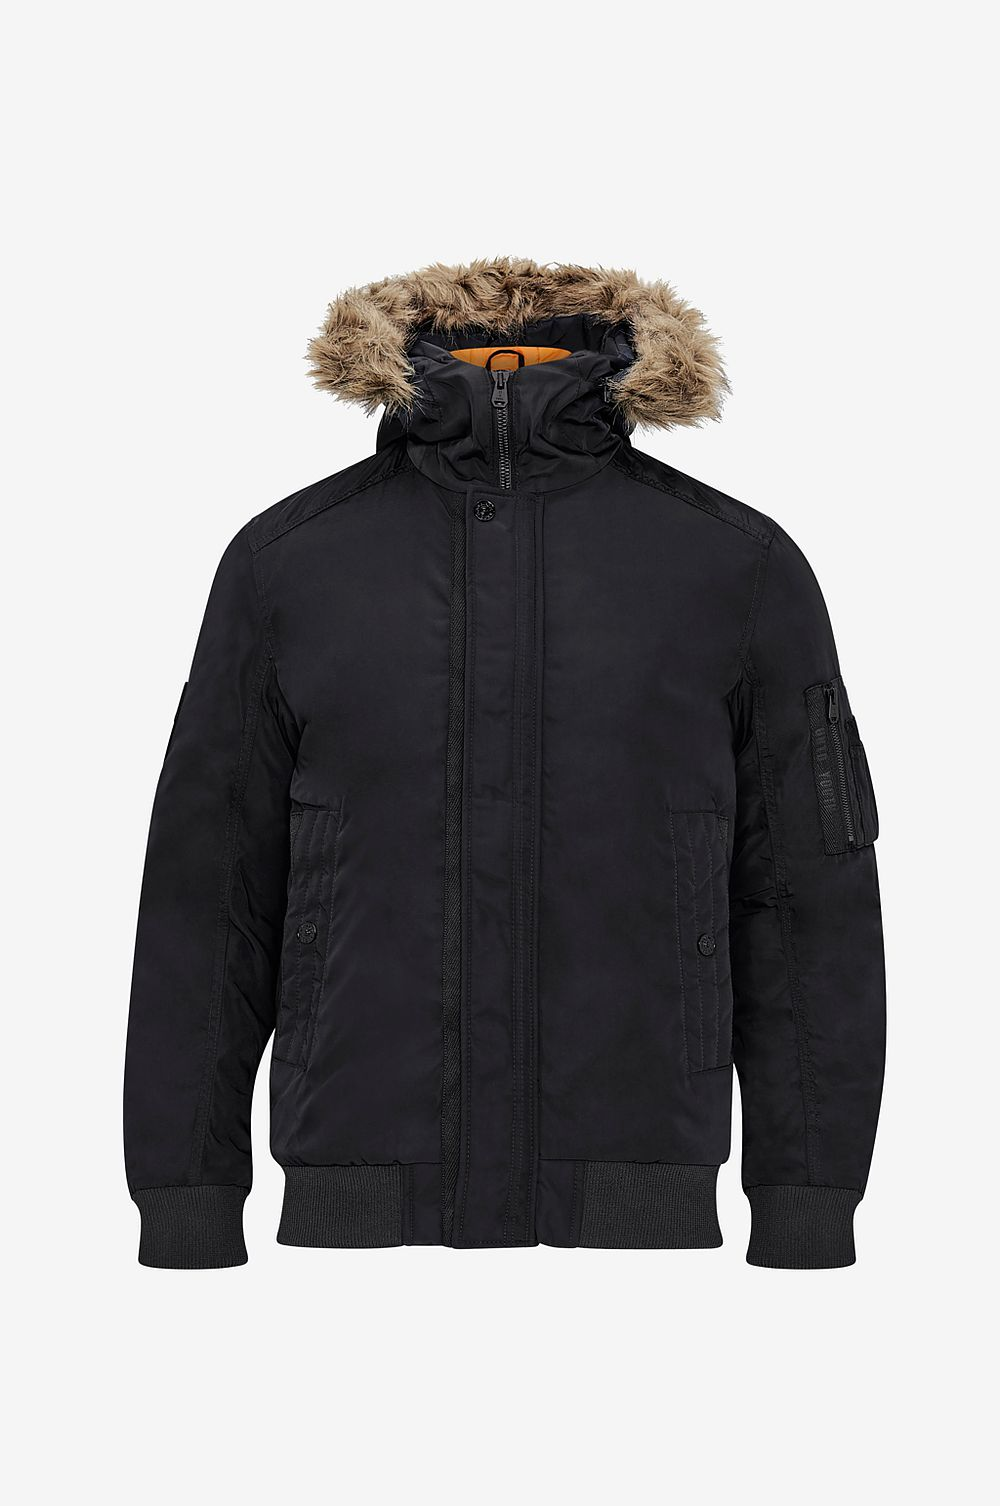 Jack & Jones Jacka jcoNew Carter Jacket - Svart - Herr